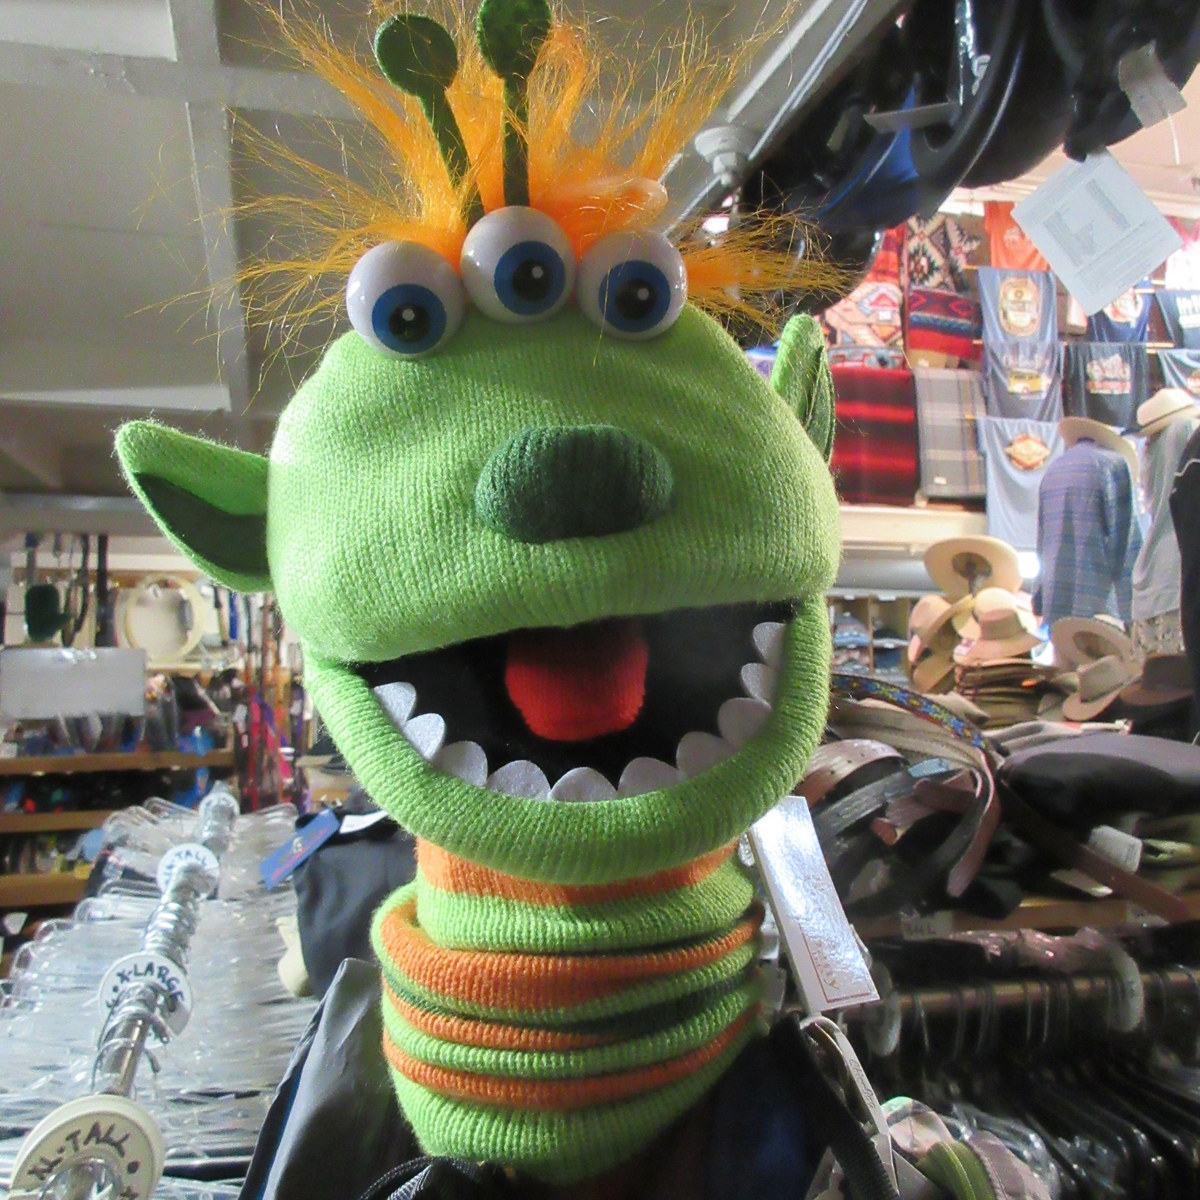 Narg Monster Puppet from The Puppet Company